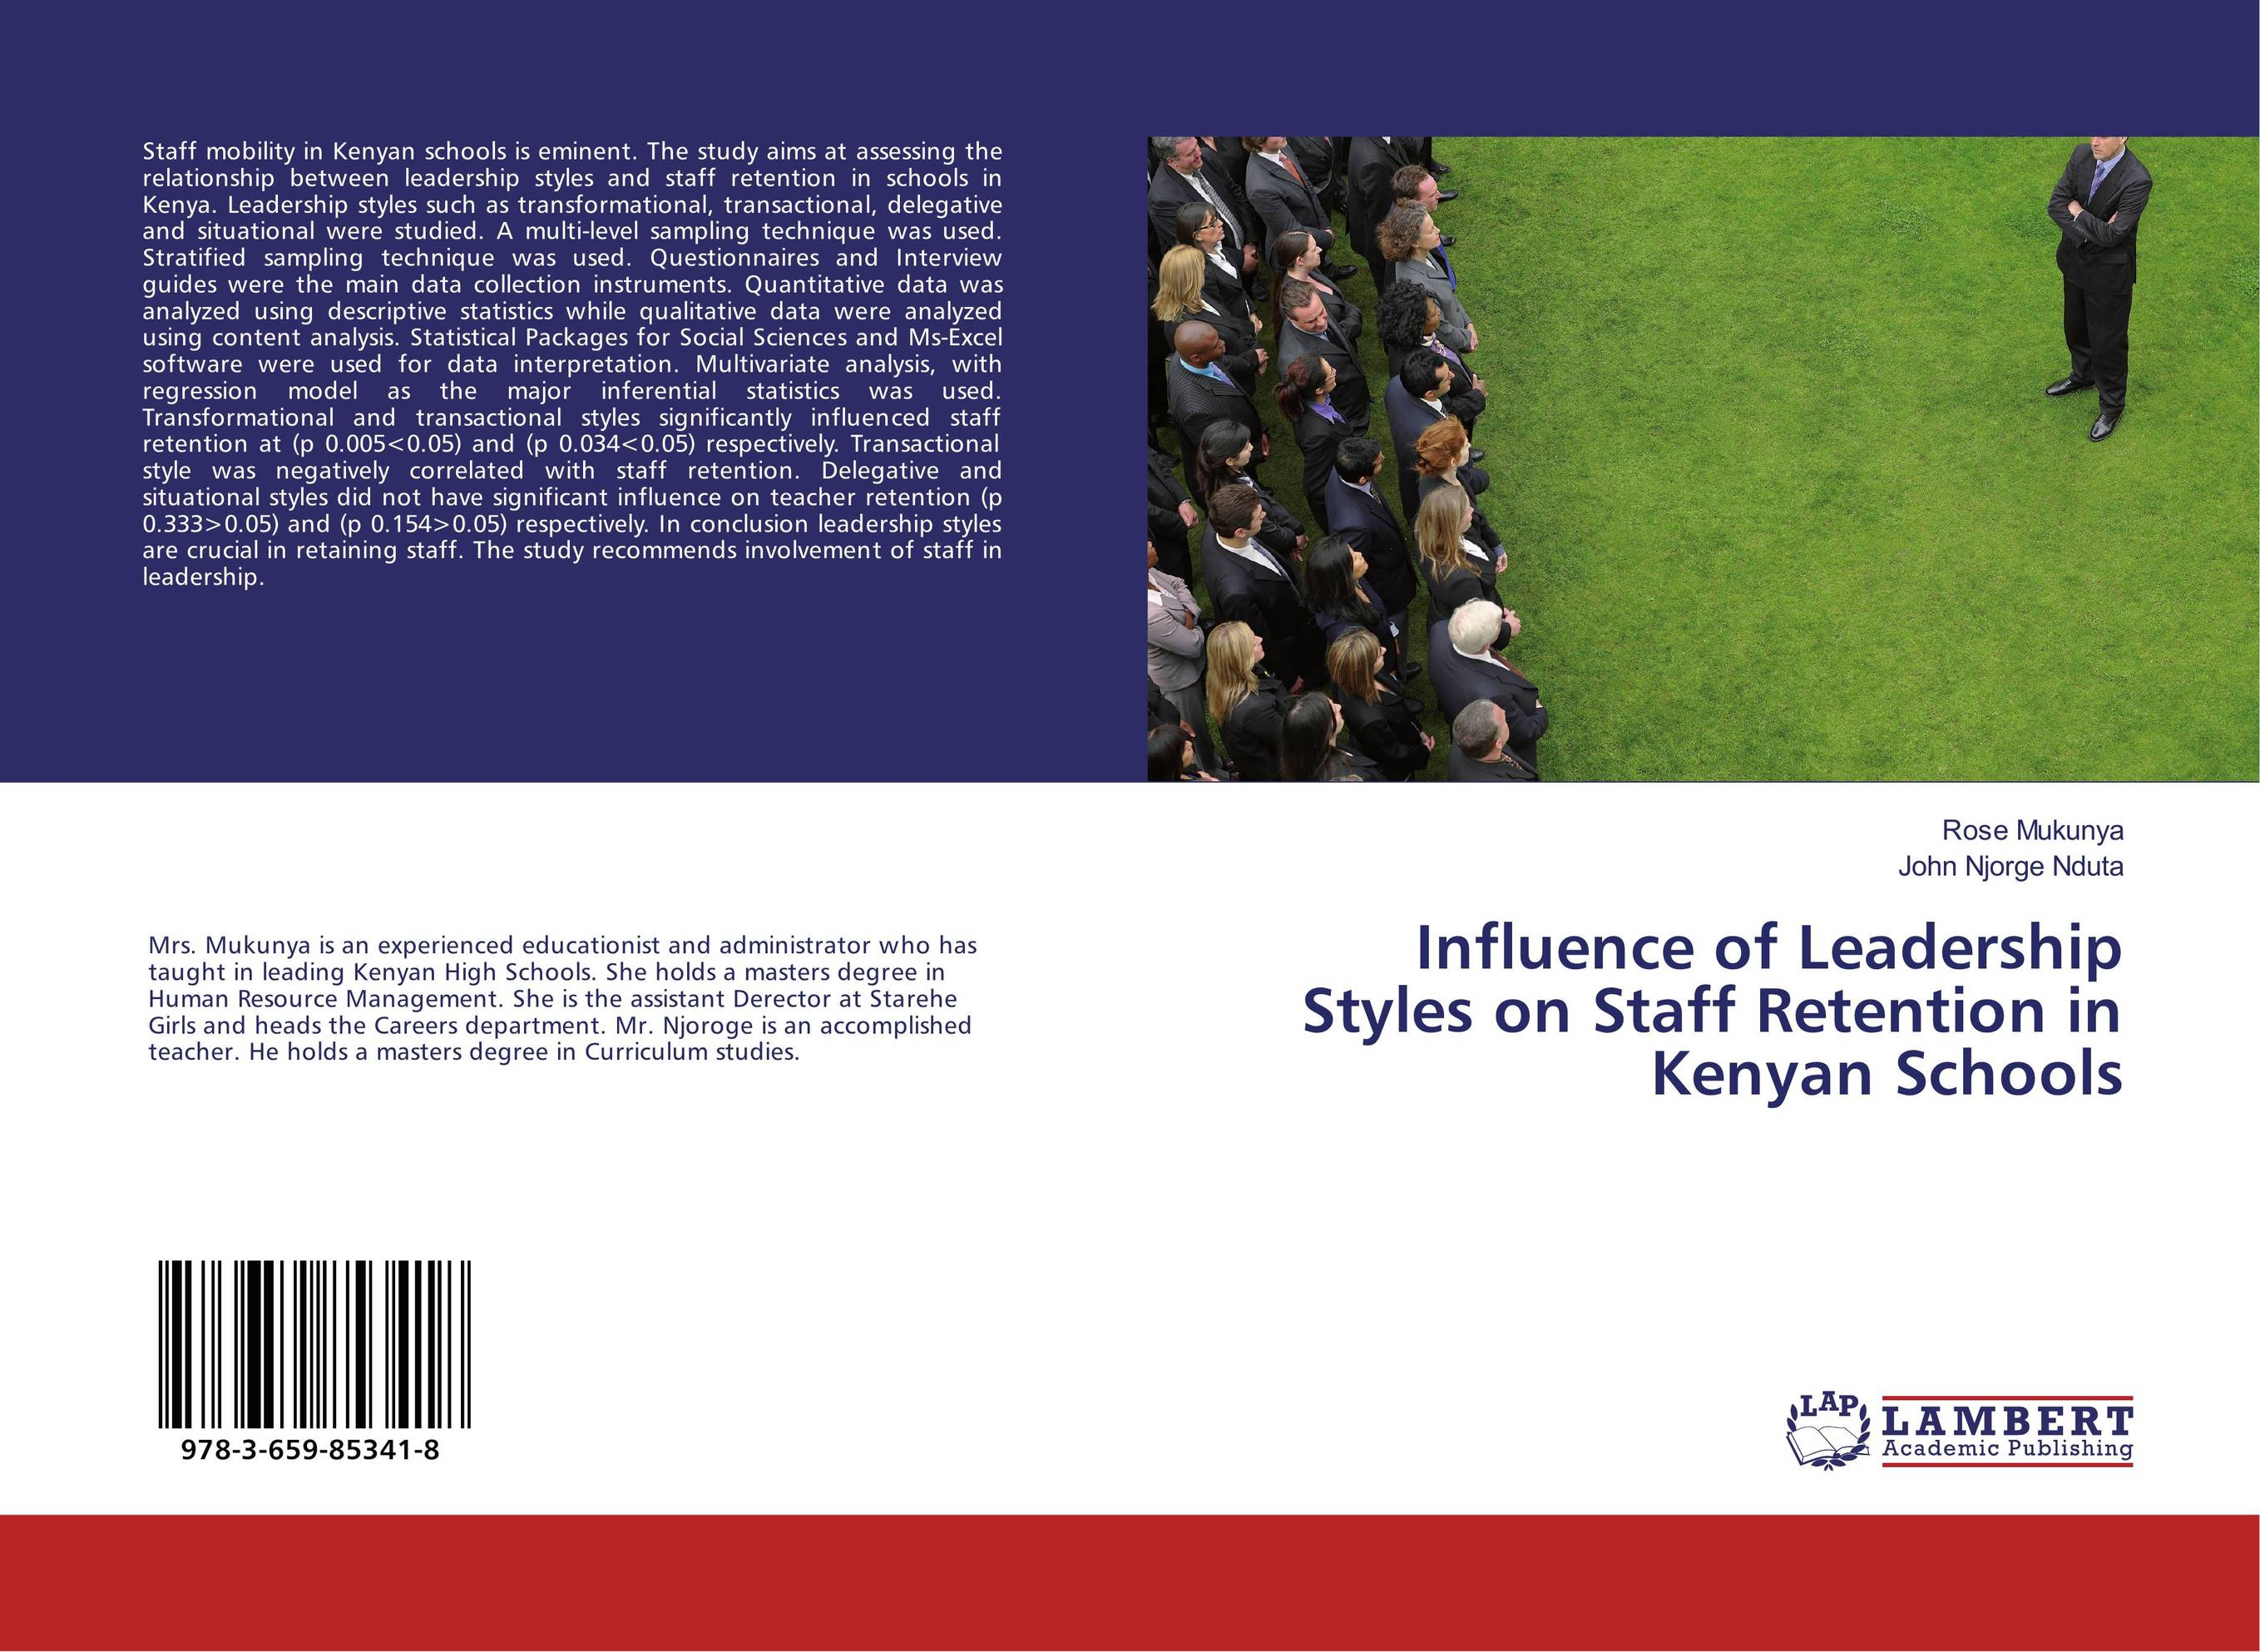 Influence of Leadership Styles on Staff Retention in Kenyan Schools